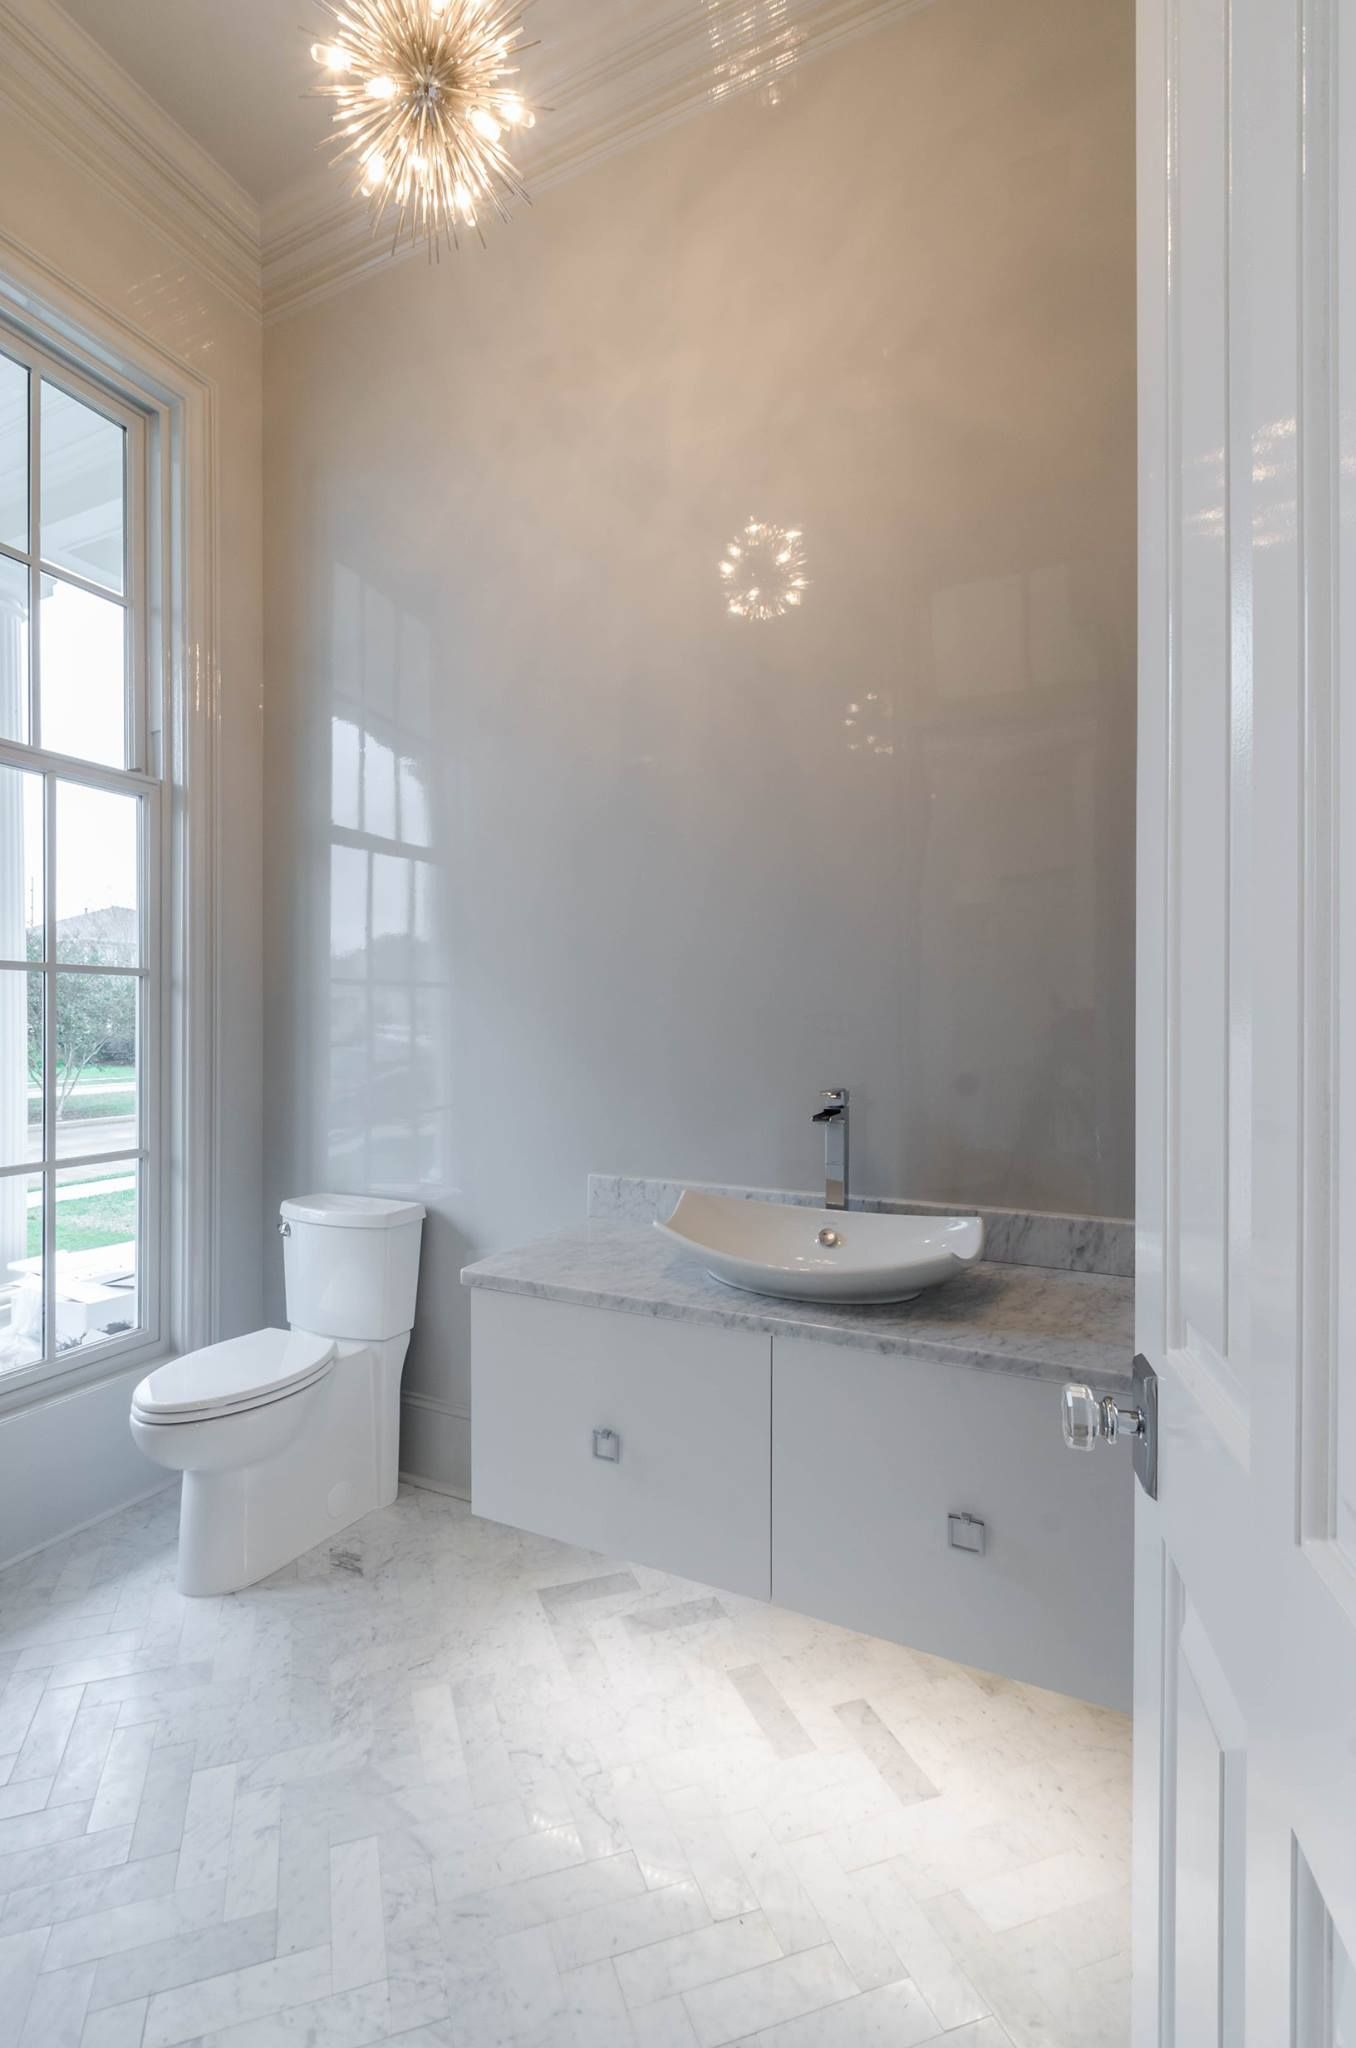 Jason Bertoniere Painting Contractor Blog Archive Fine Paints Of Europe High Gloss Frenzy Fine Paints Of Europe Lacquered Walls Bathrooms Remodel